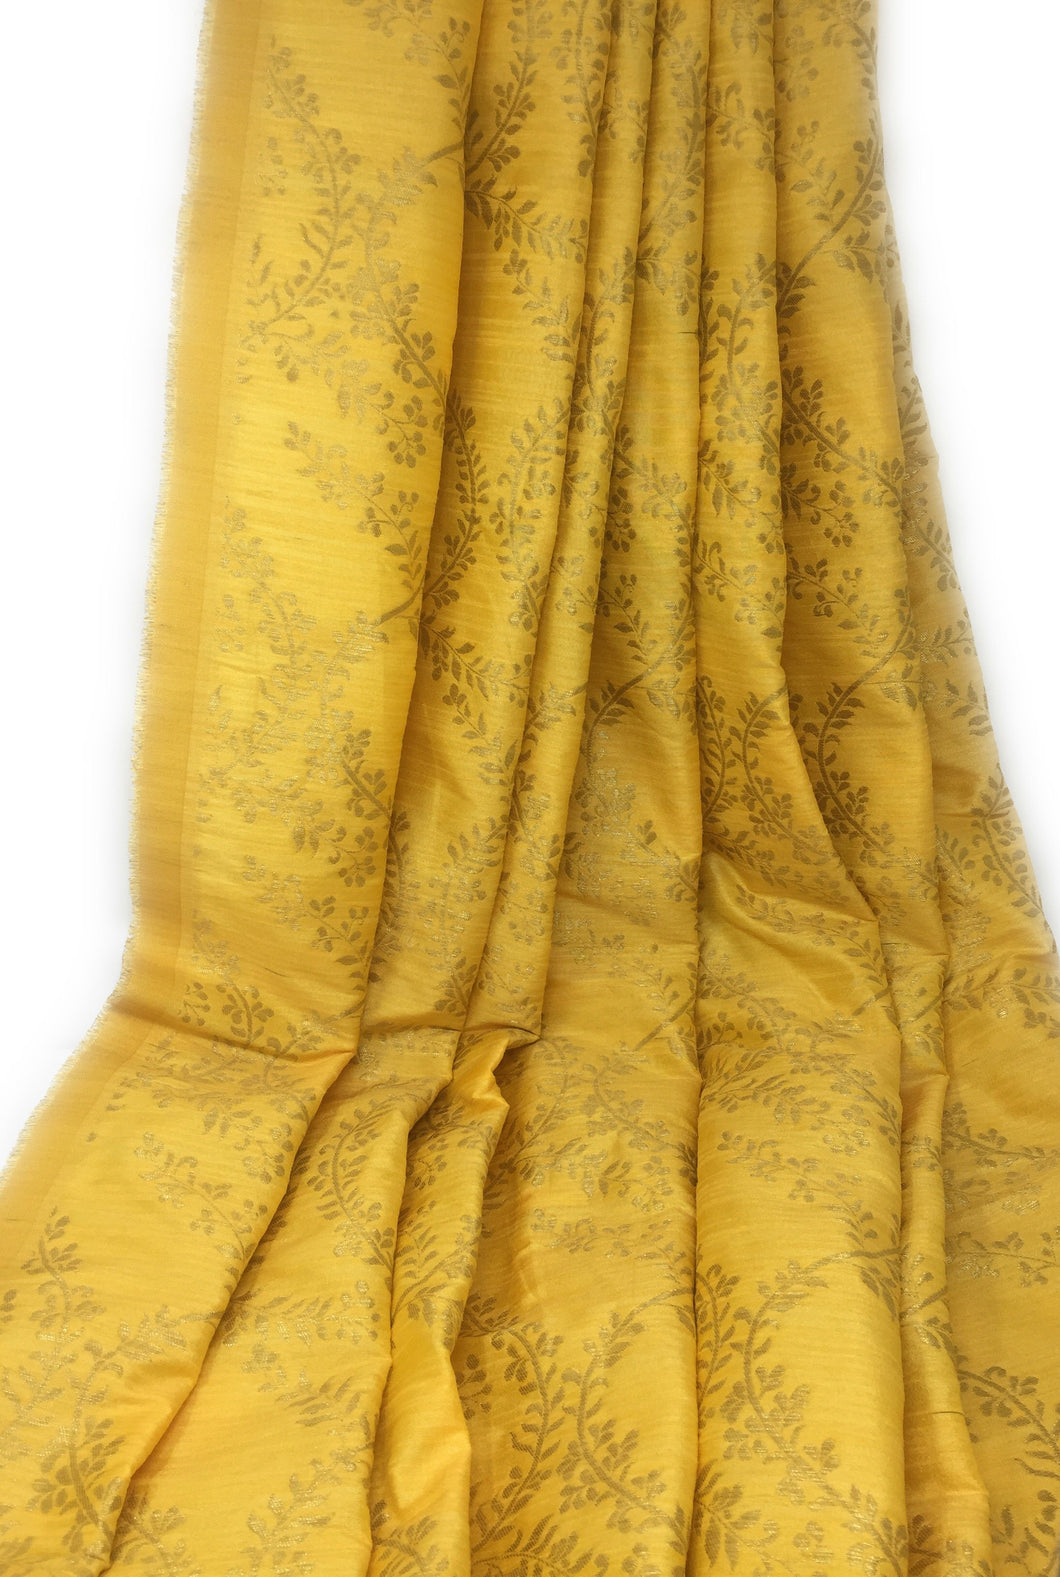 Yellow Brocade Fabric With Gold Jacquard Work